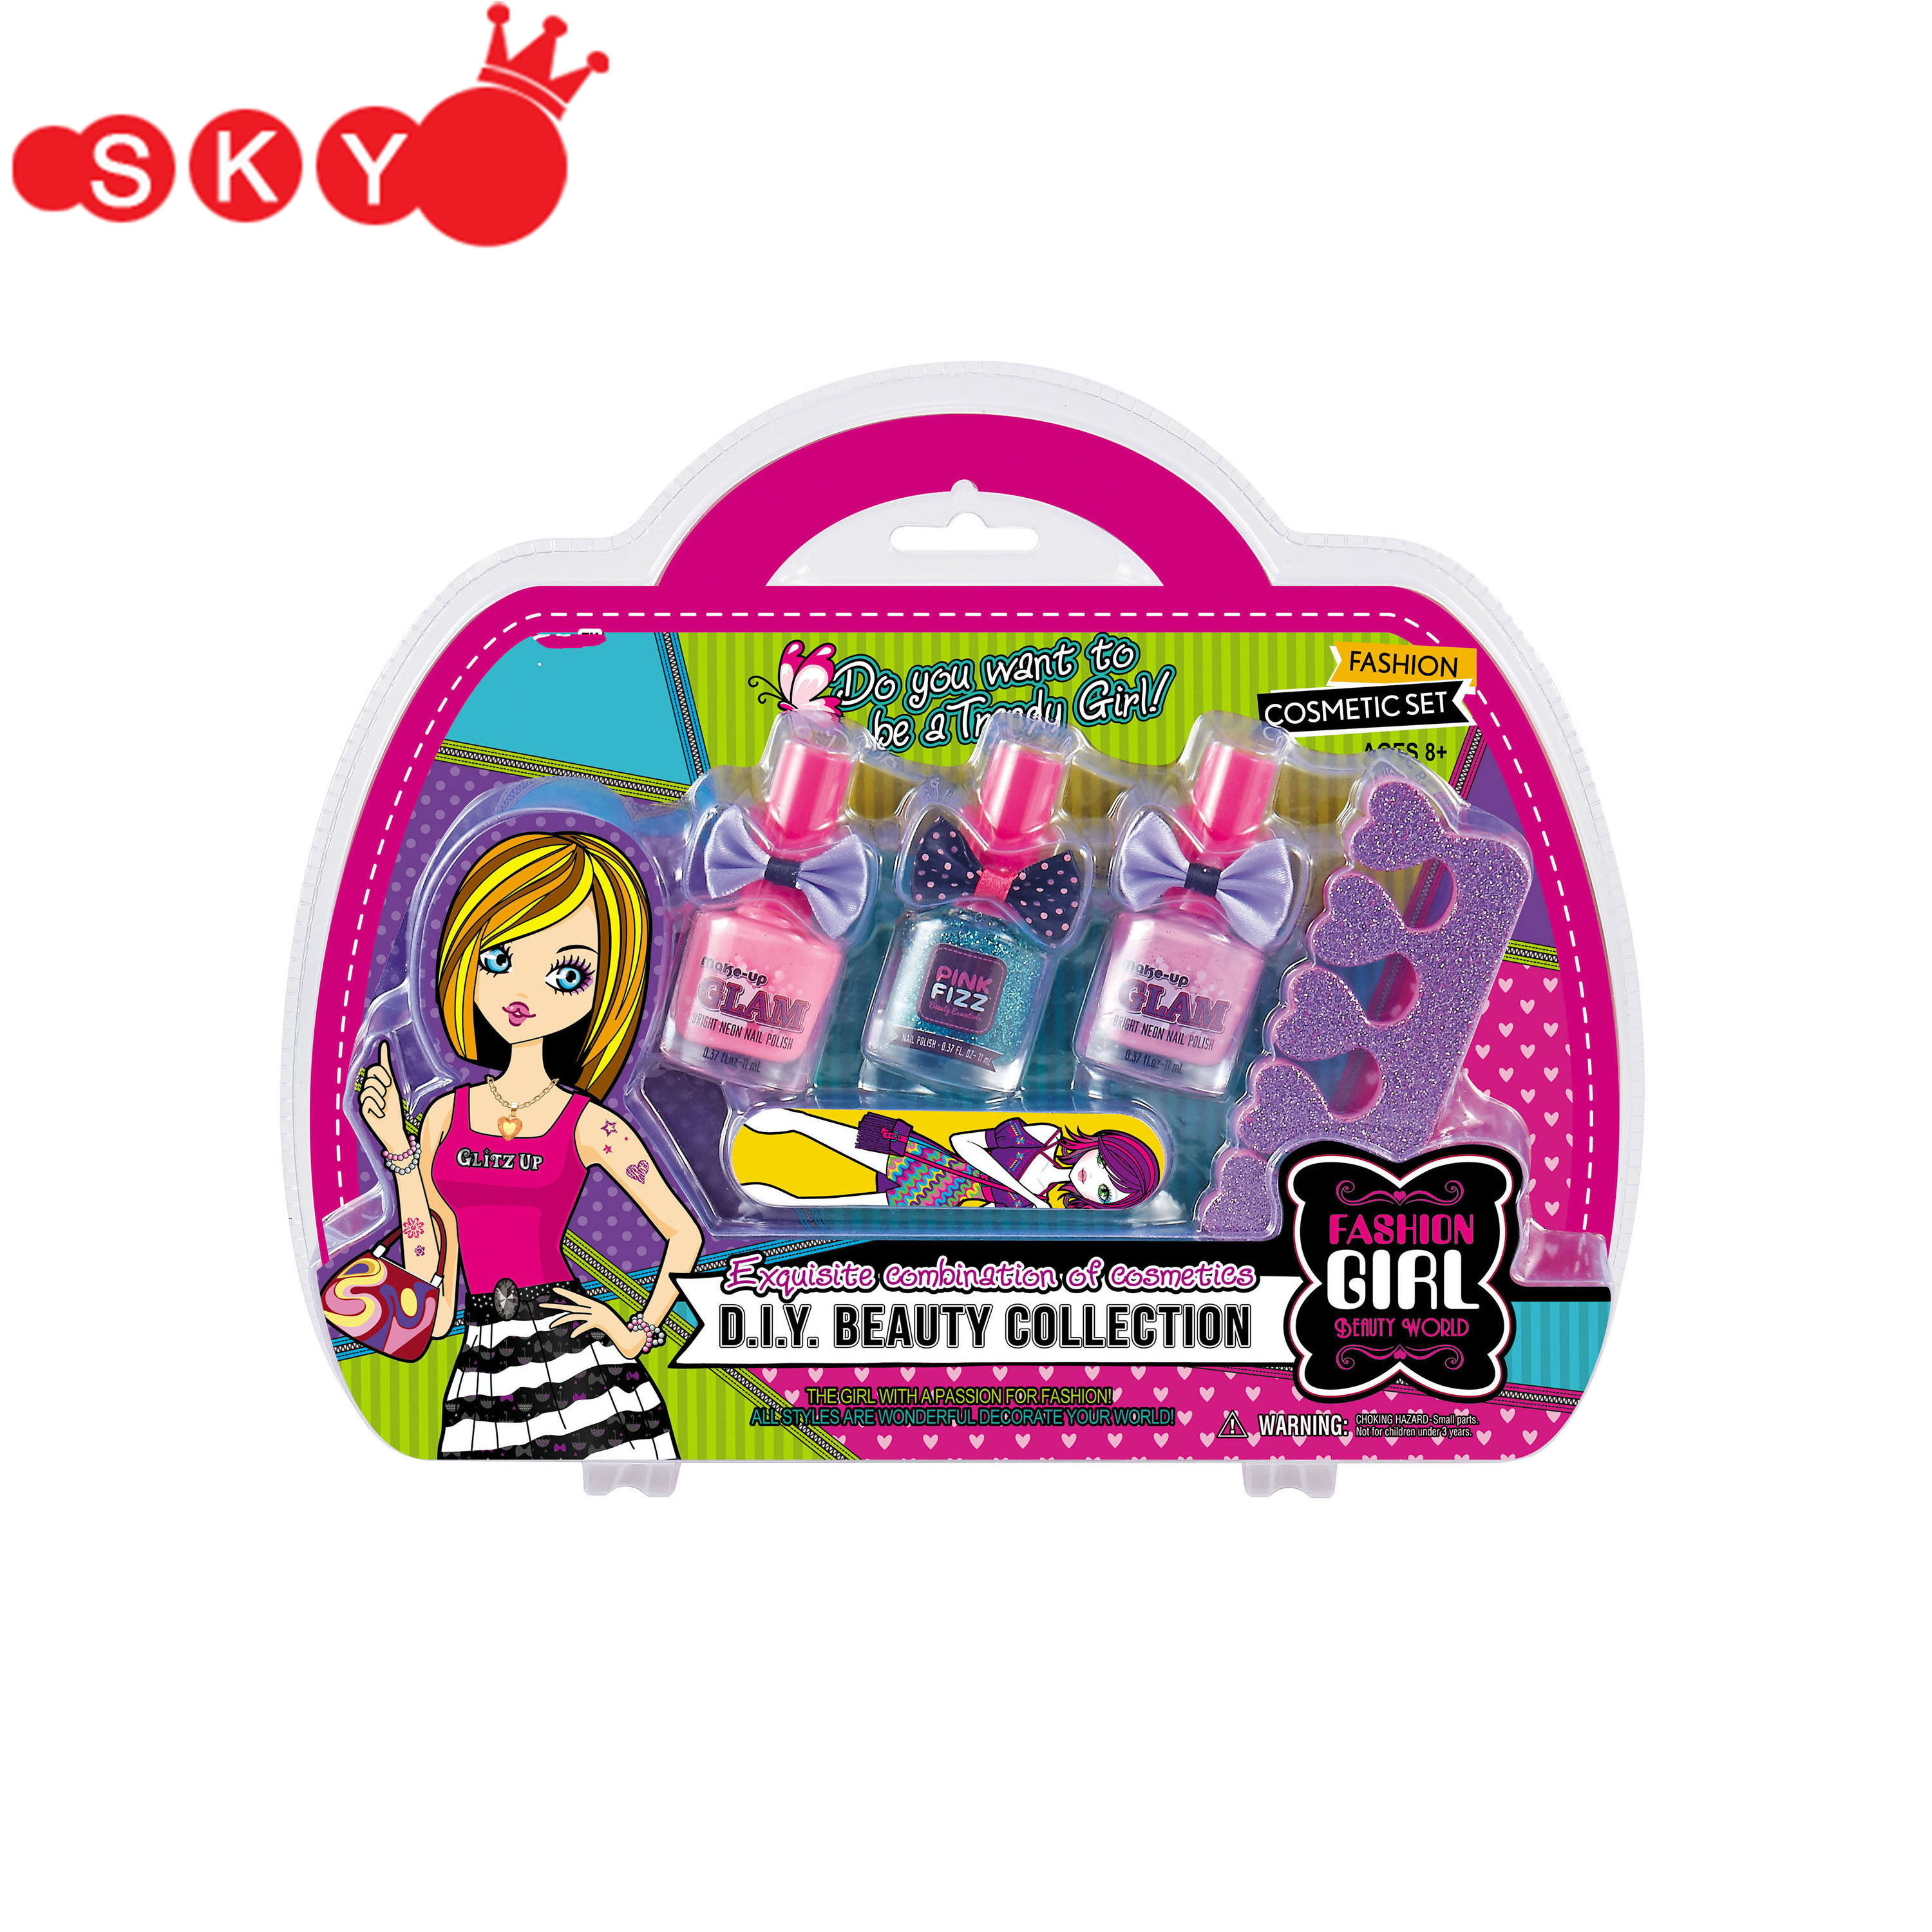 New toys 2018 kids diy 못 매니큐어 패션 kit girls beauty set